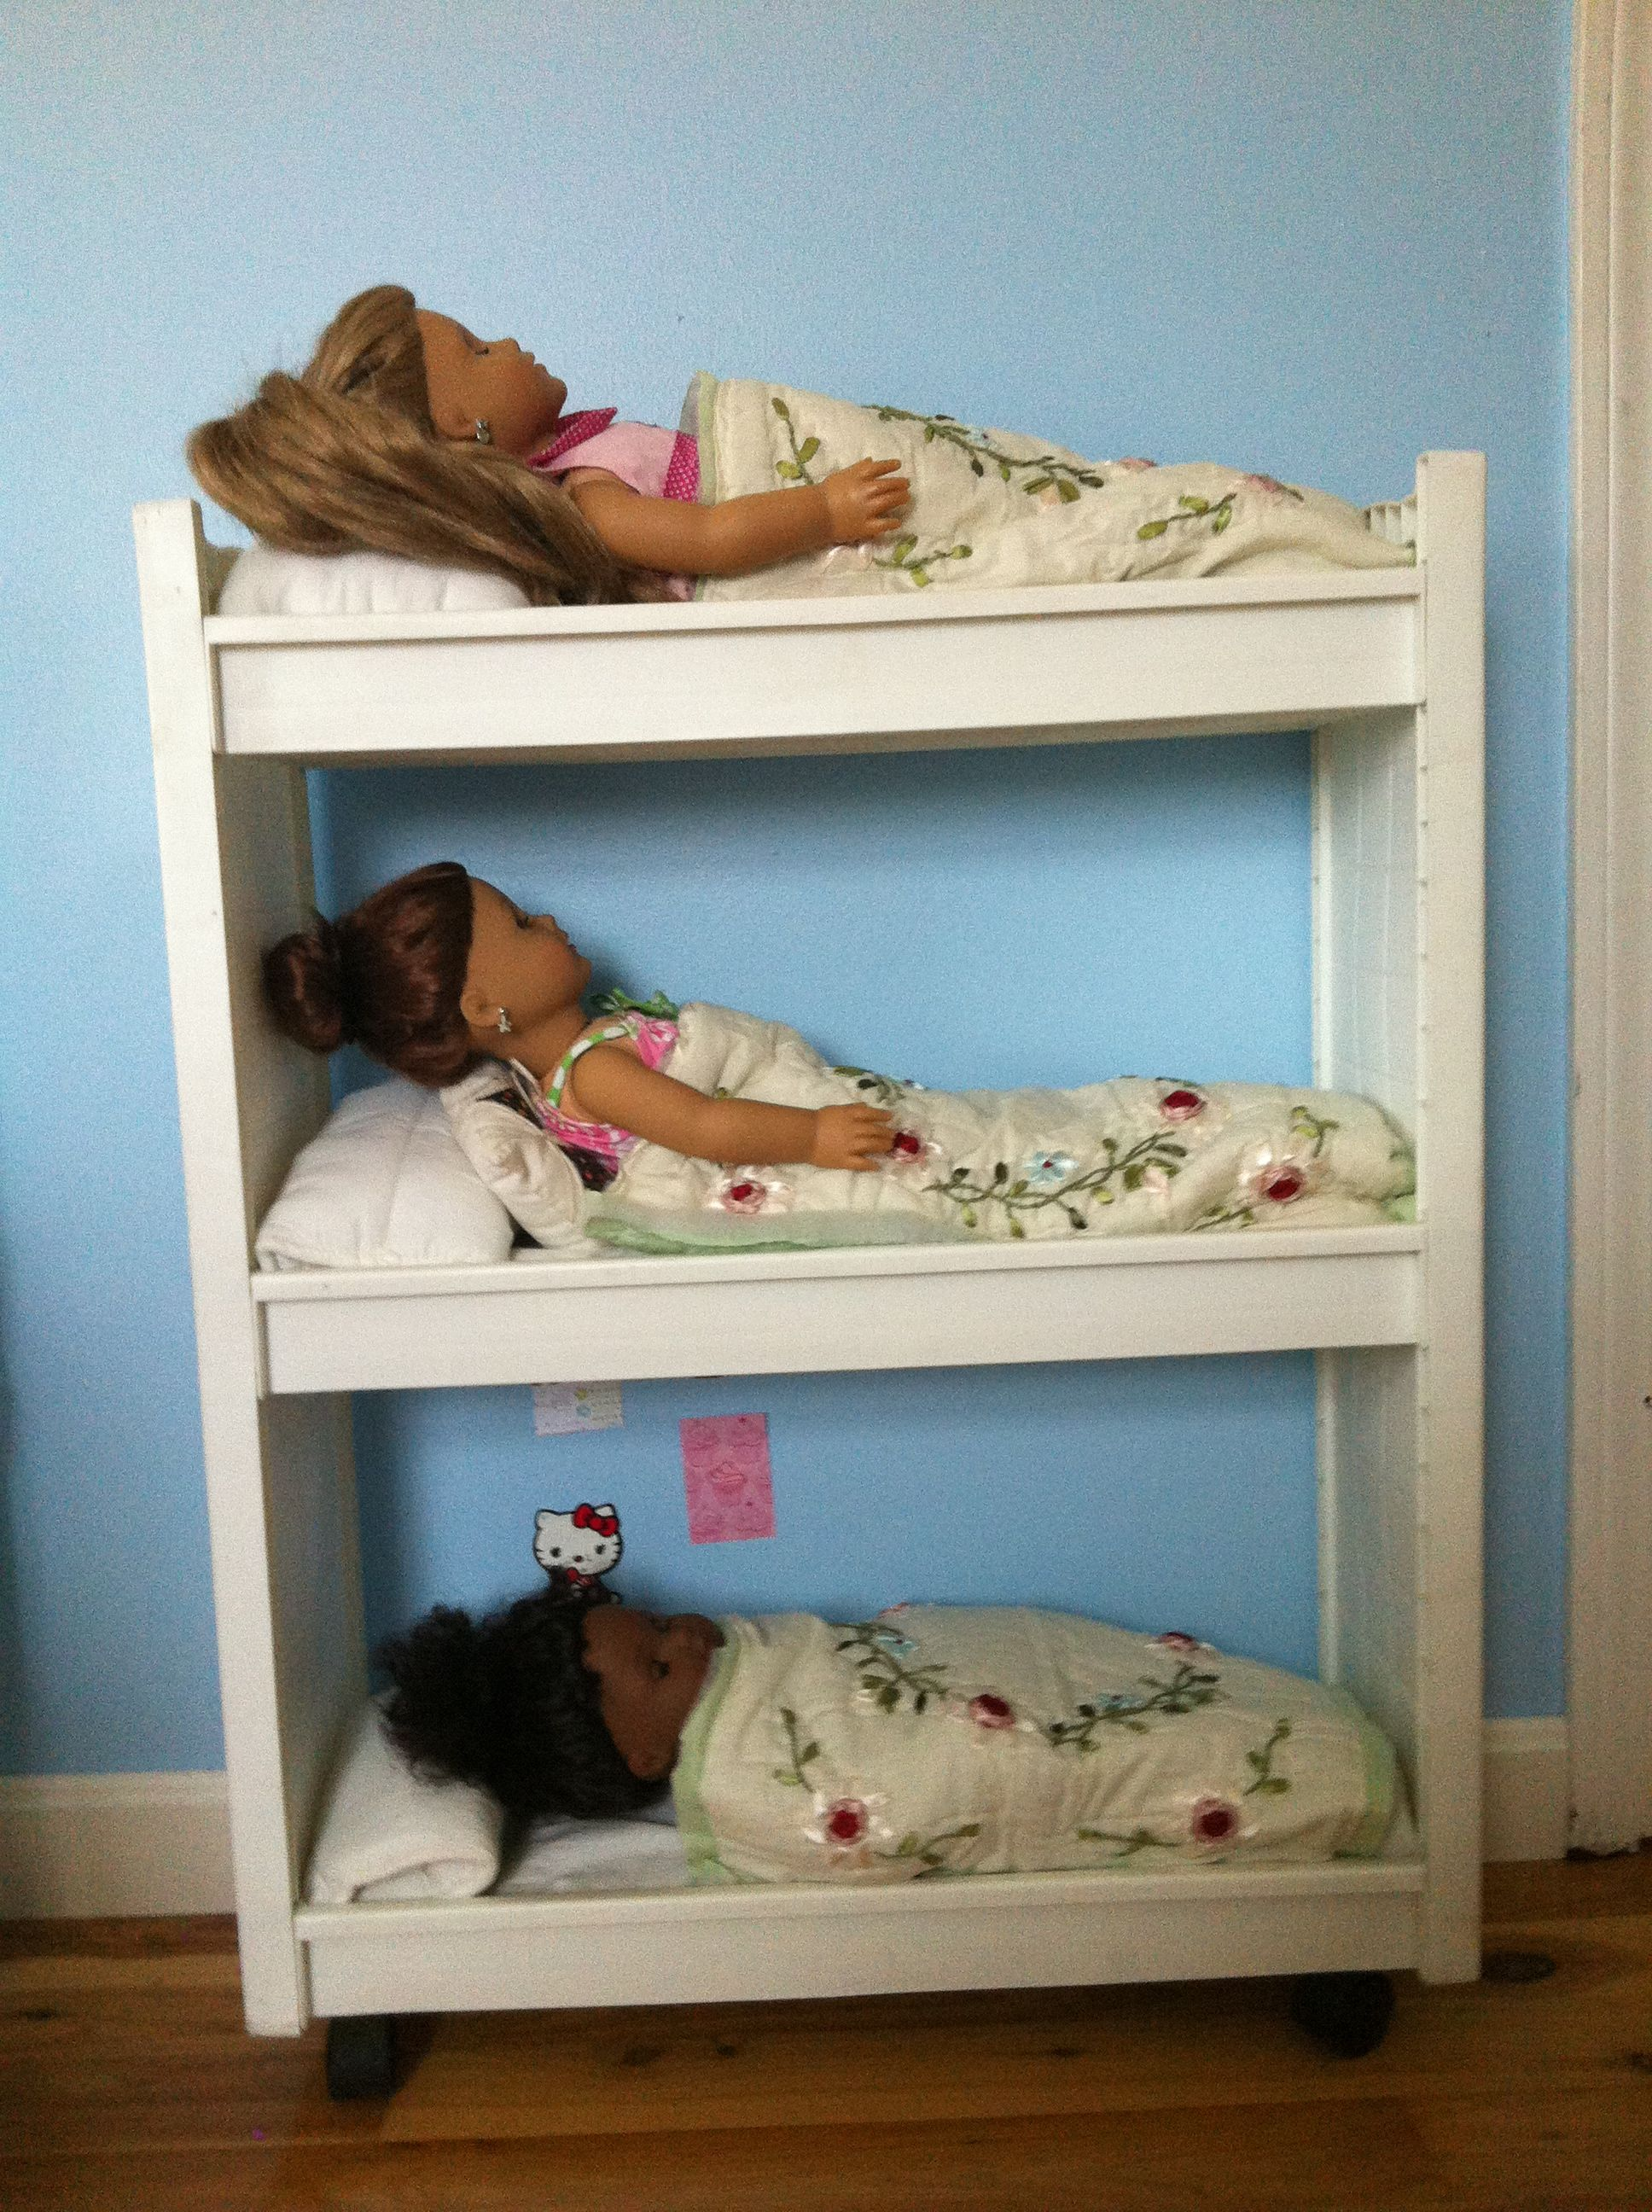 Two Dollar Thrift Store Cd Tower Repurposed As A Triple Bunk Bed For